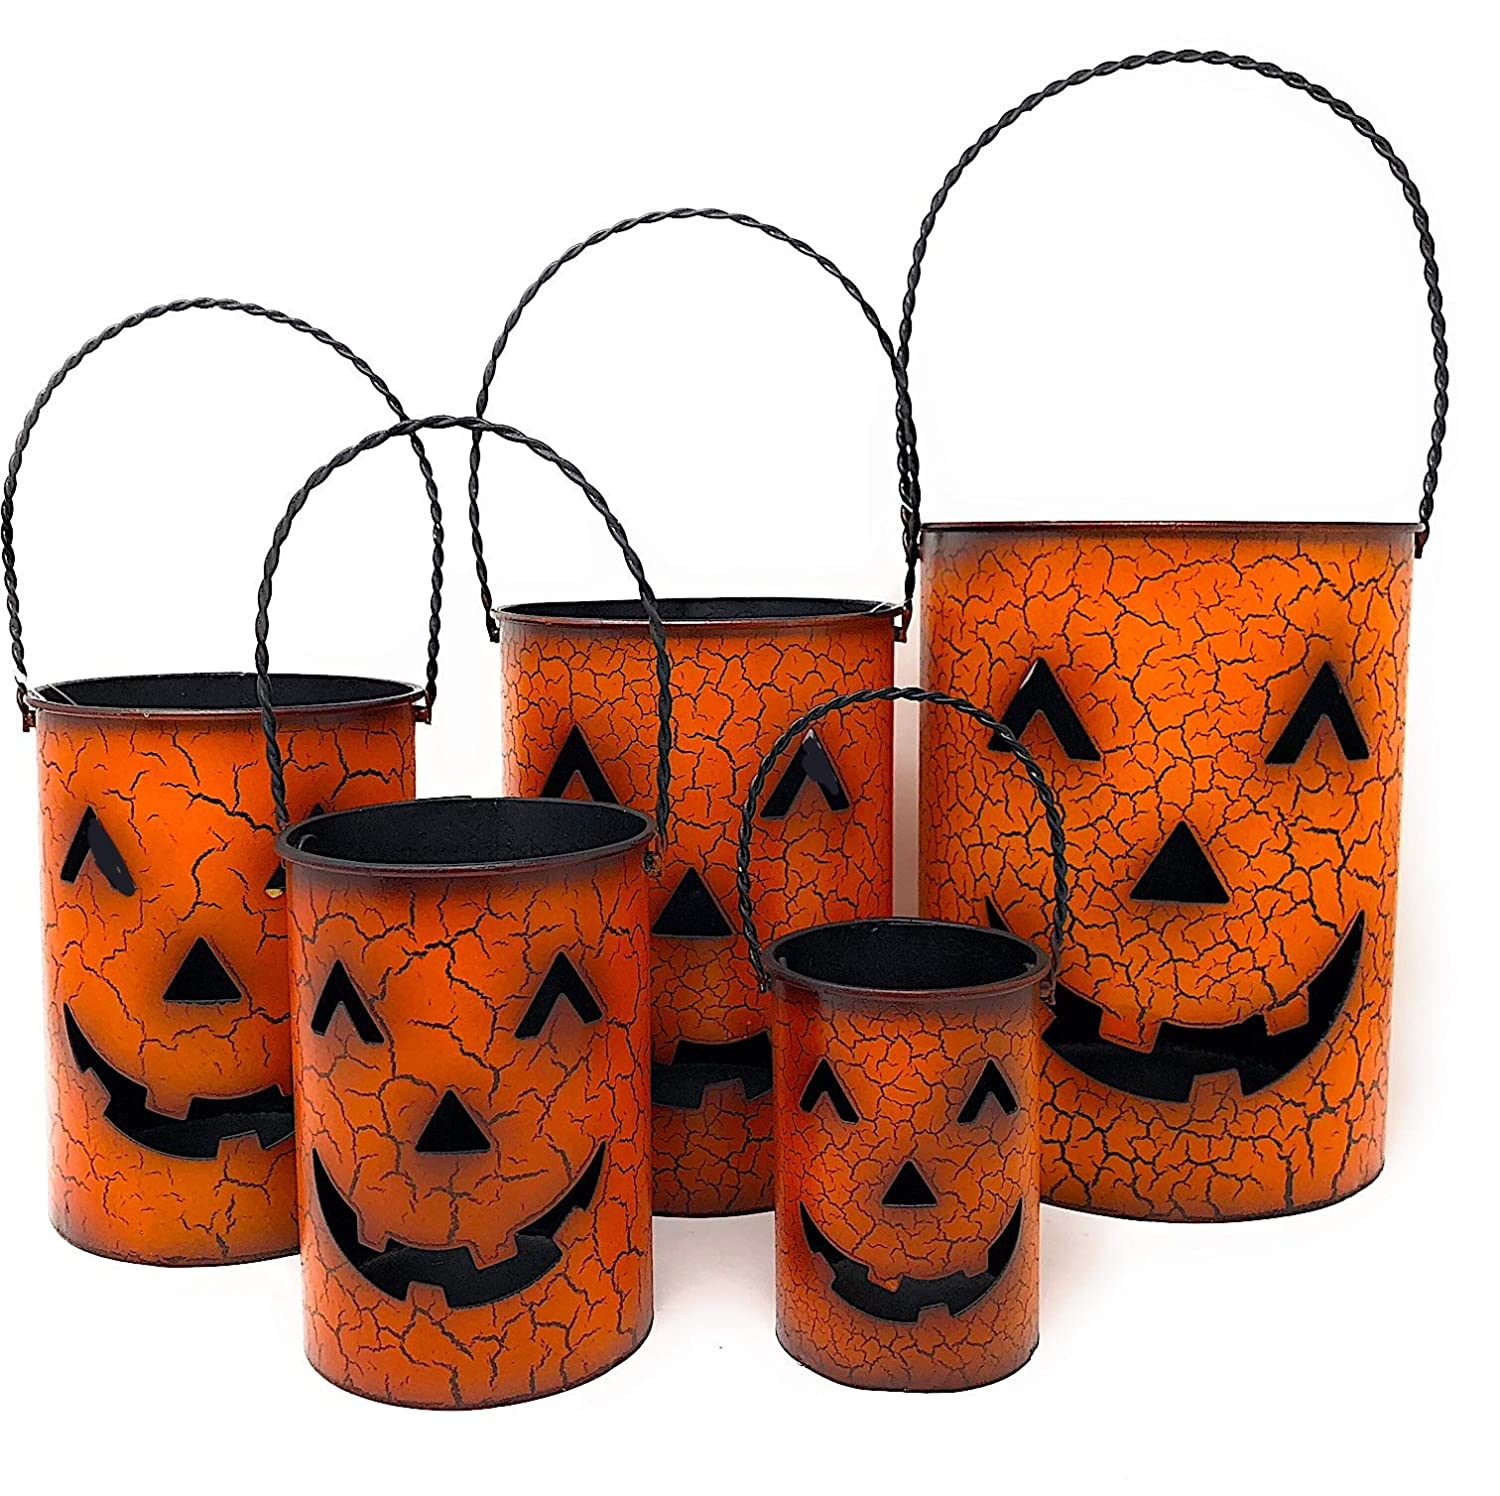 D.I. Inc. Halloween Lantern Rustic Candle Holder Metal Indoor Outdoor Decoration Jack-O'-Lantern Buckets Lamp Set of 5 318-73142